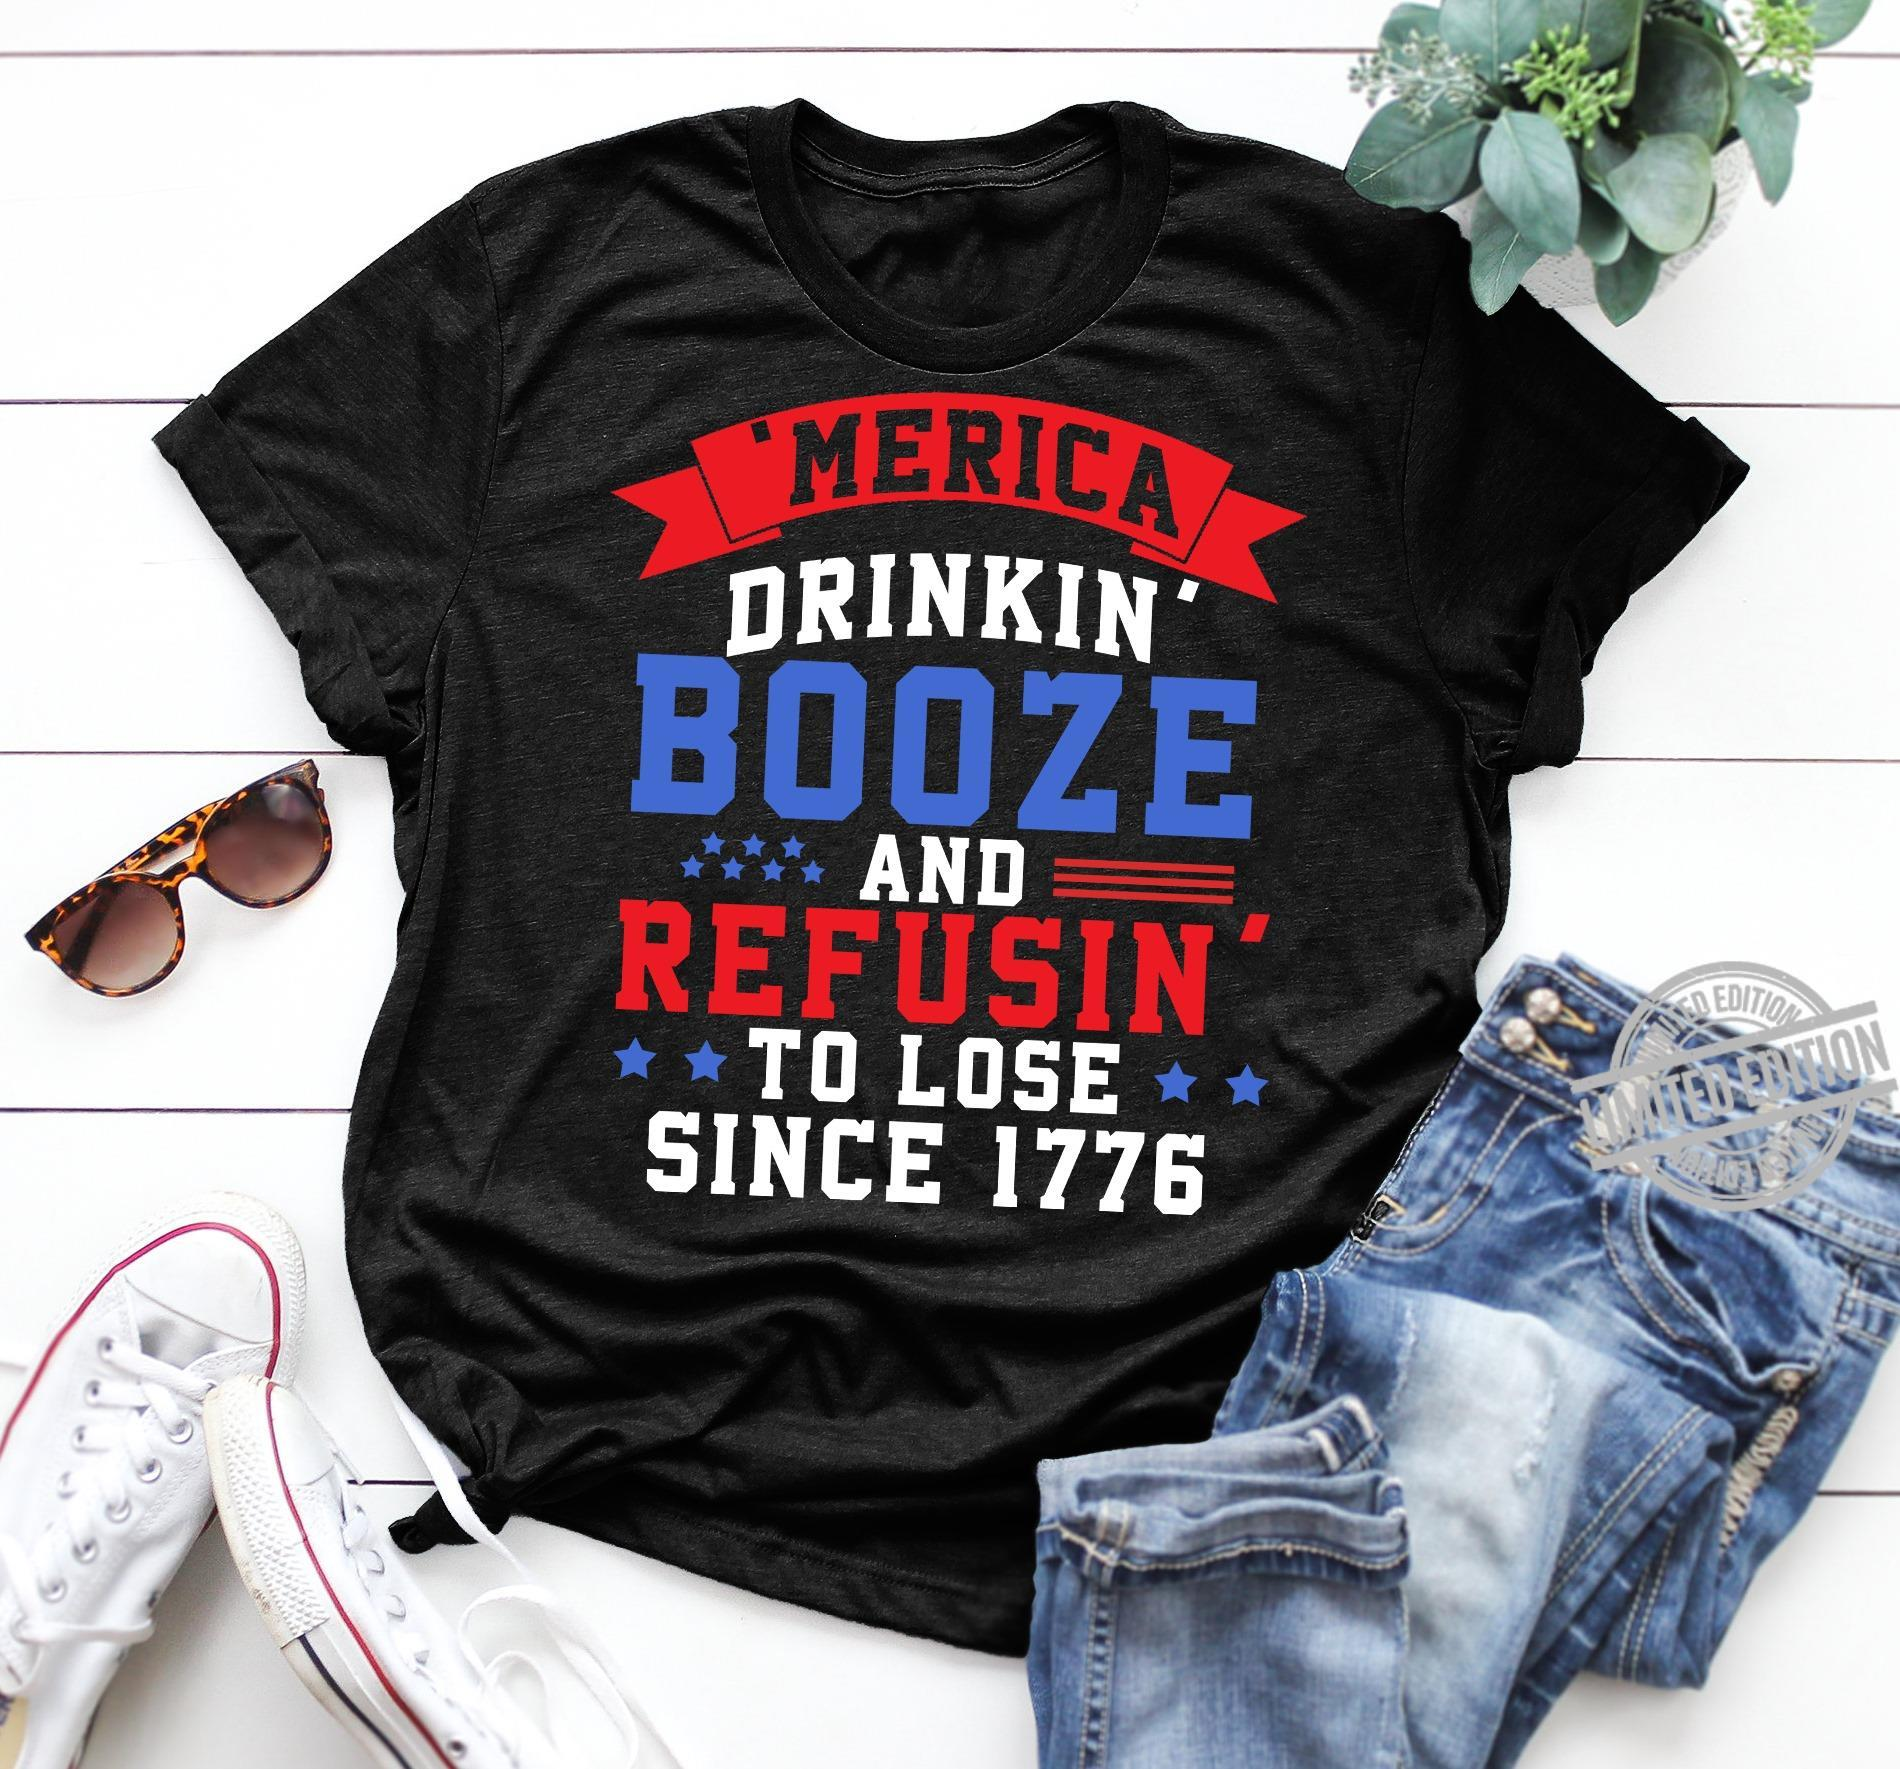 Merica Drinkin Booze And Refusin To Lose Since 1776 Shirt